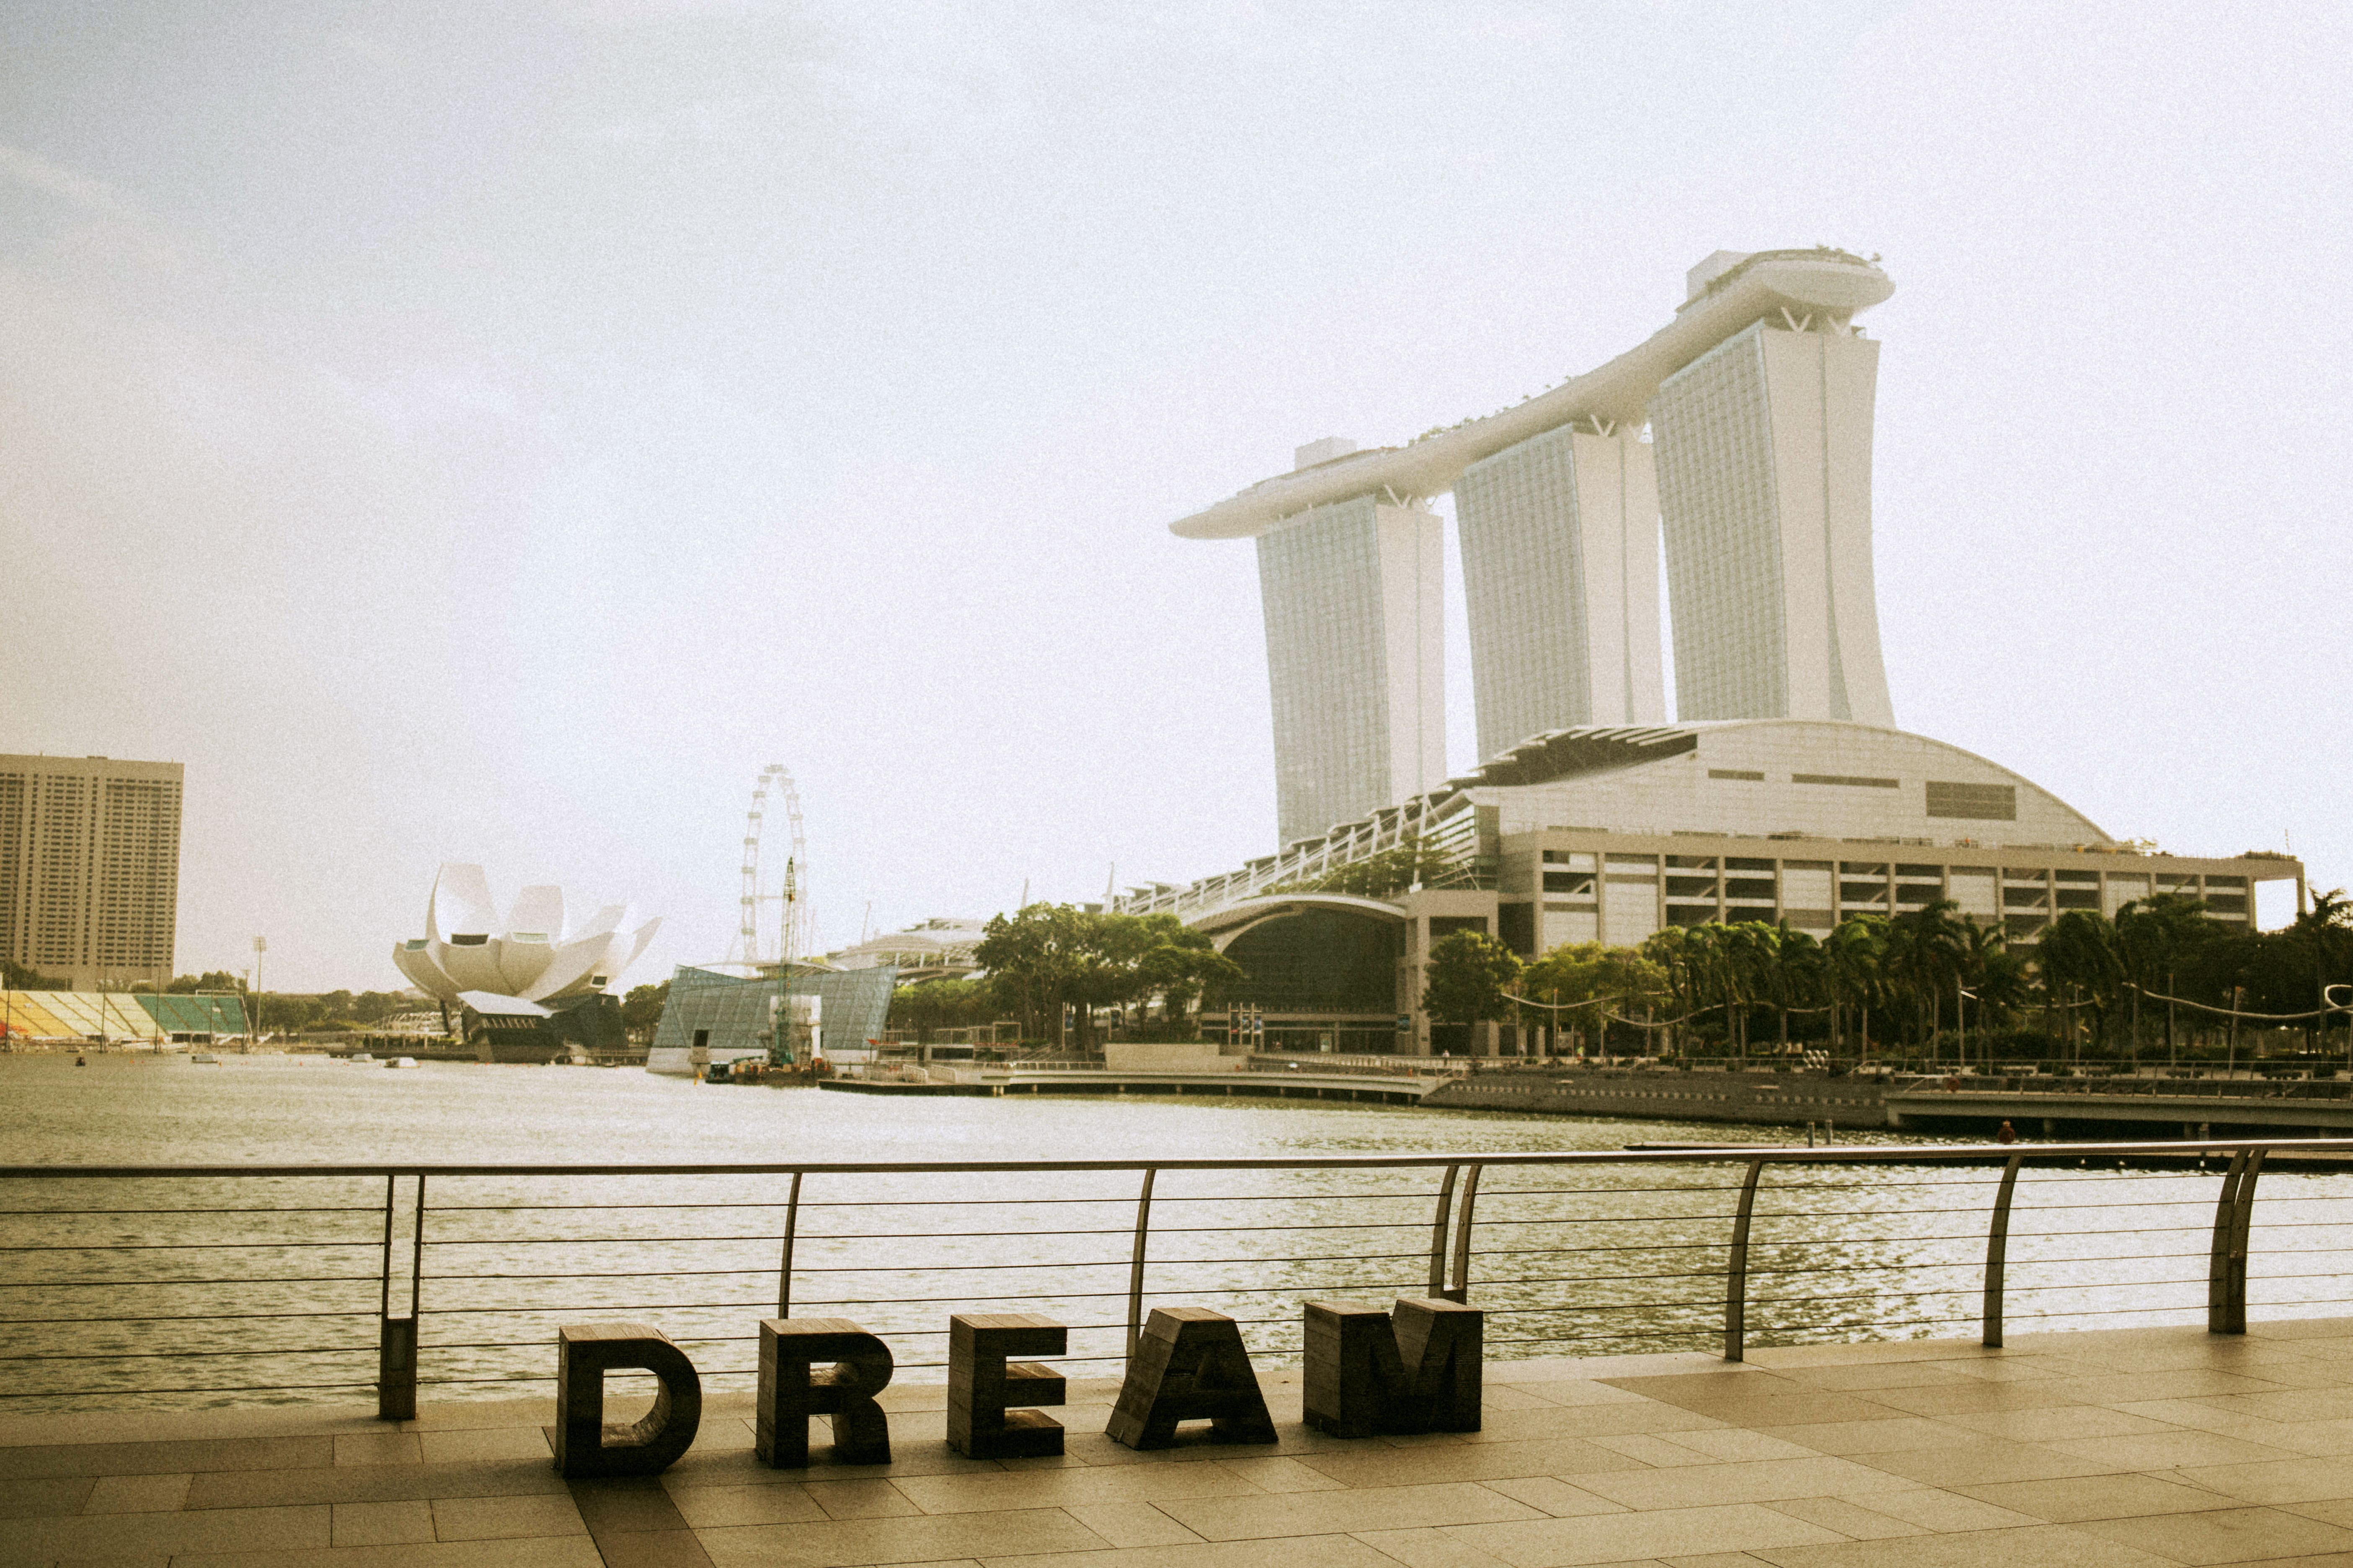 big dream lettering near fence verlooking Marina oBay sands building